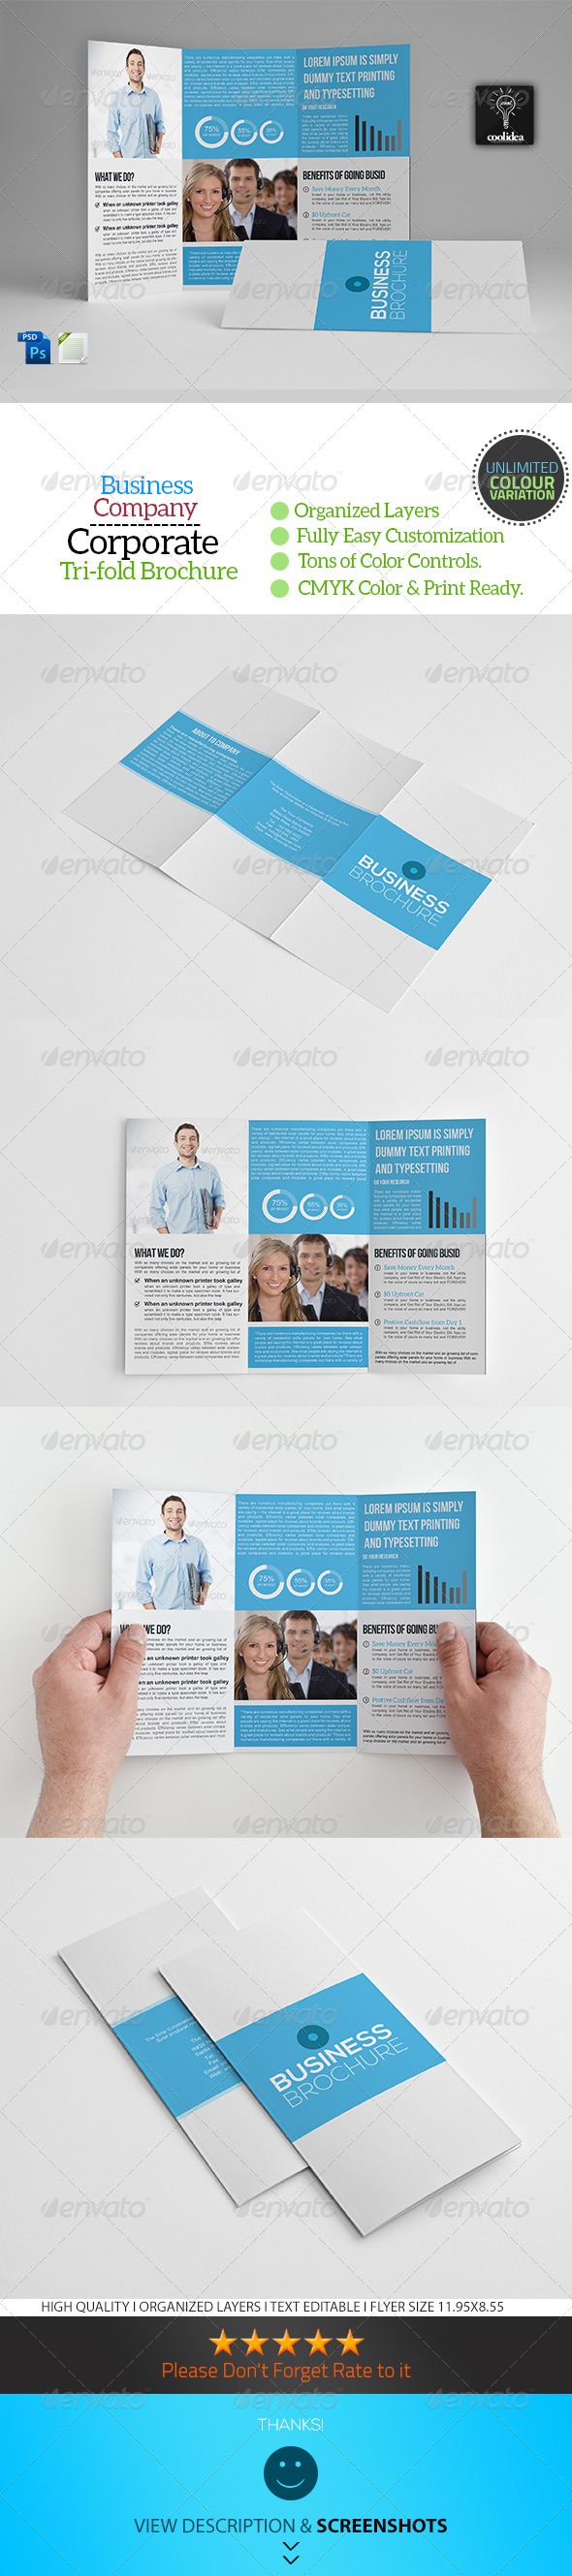 A4 Trifold Business Brochure Template Vol04 - Corporate Brochures